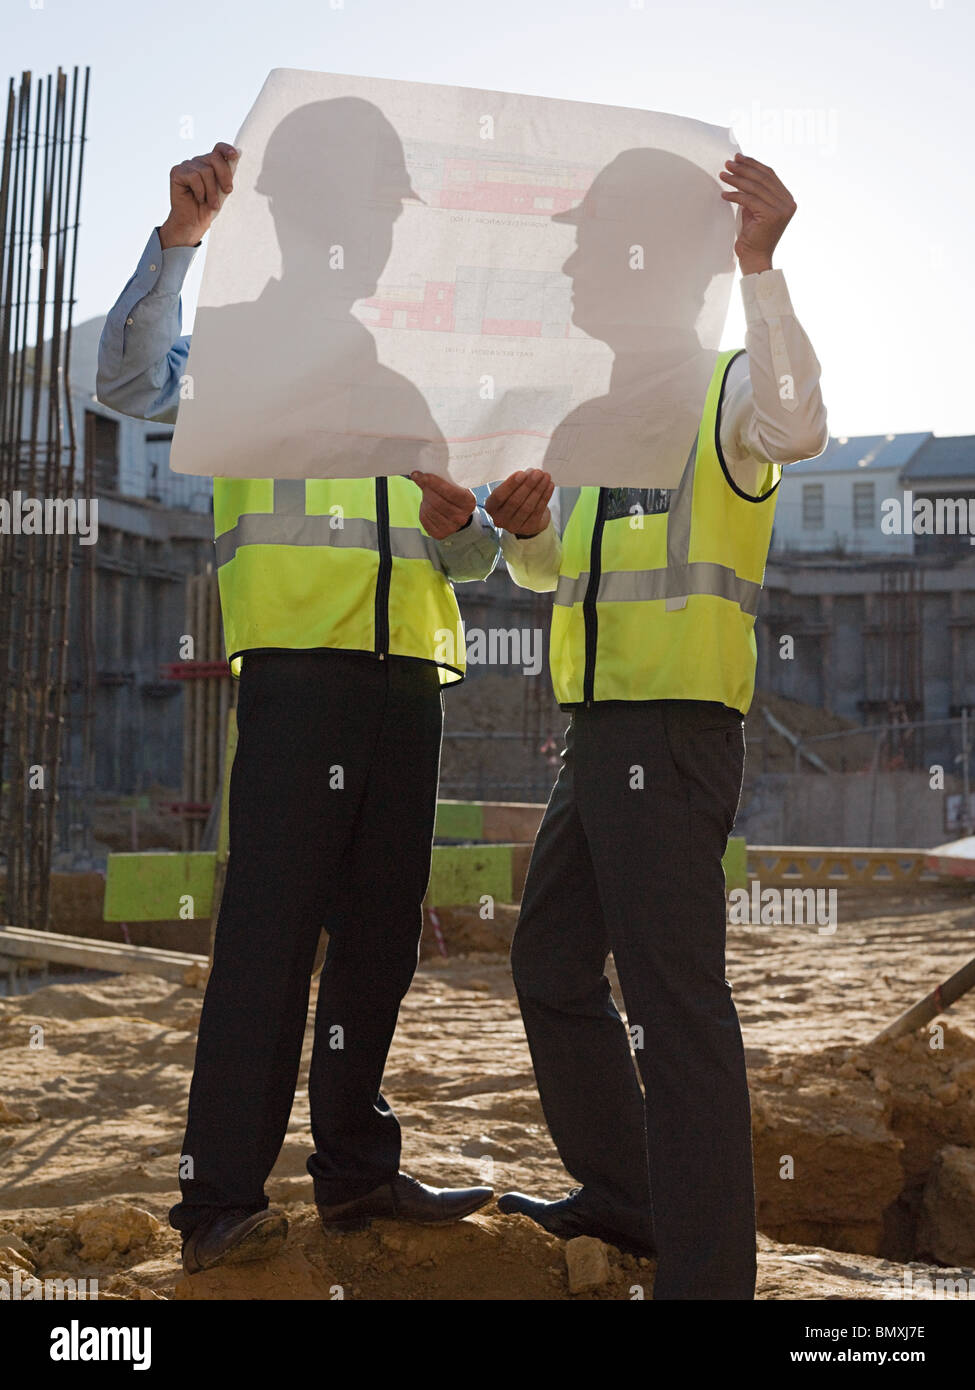 Construction stand stock photos construction stand stock images mature men inspecting blueprints on construction site stock image malvernweather Choice Image